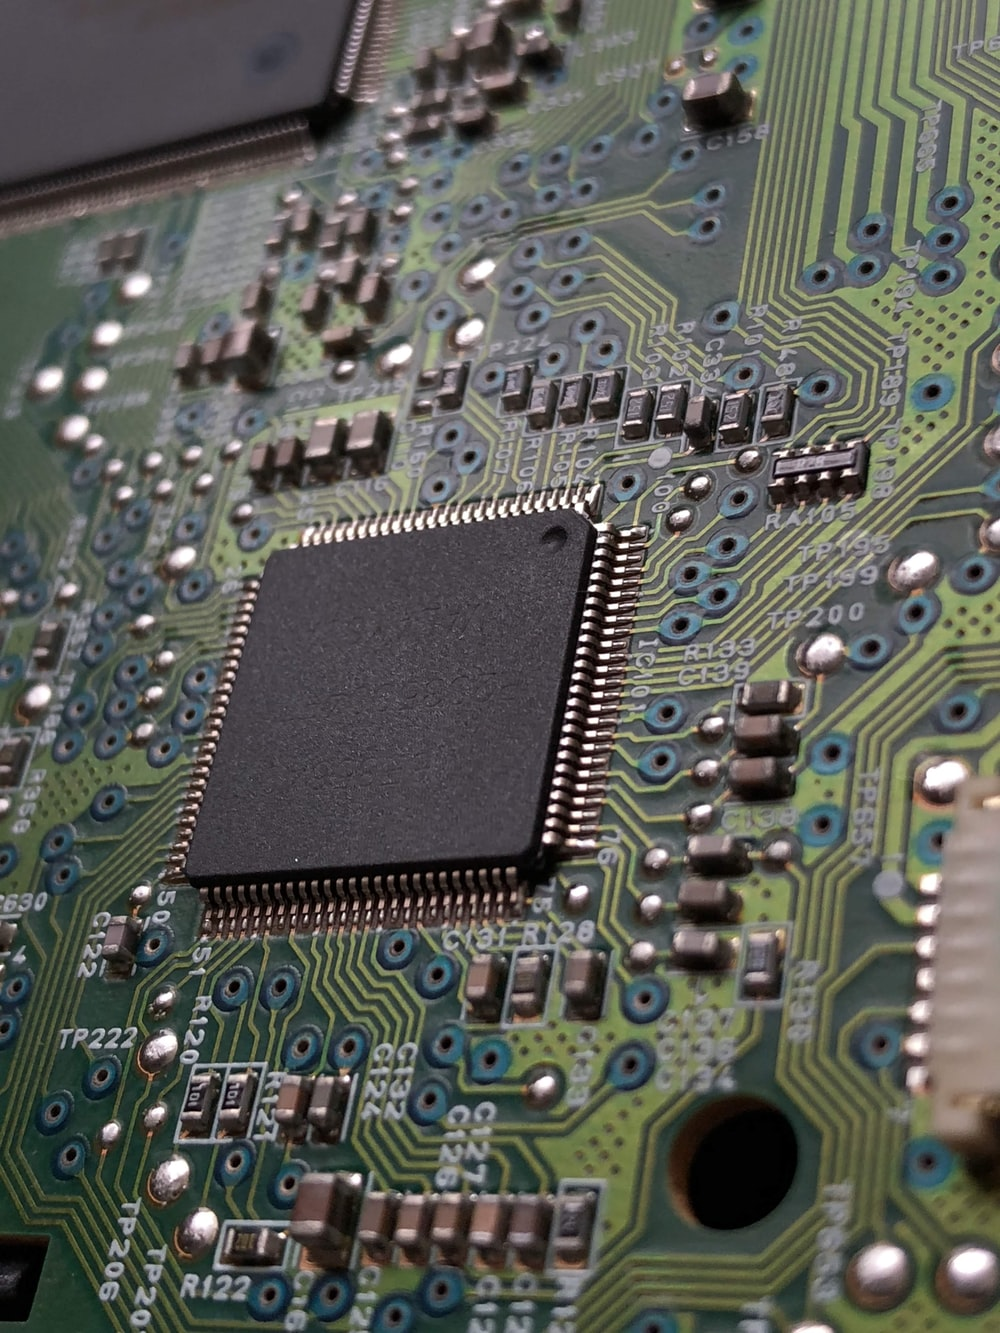 close-up photography of green motherboard